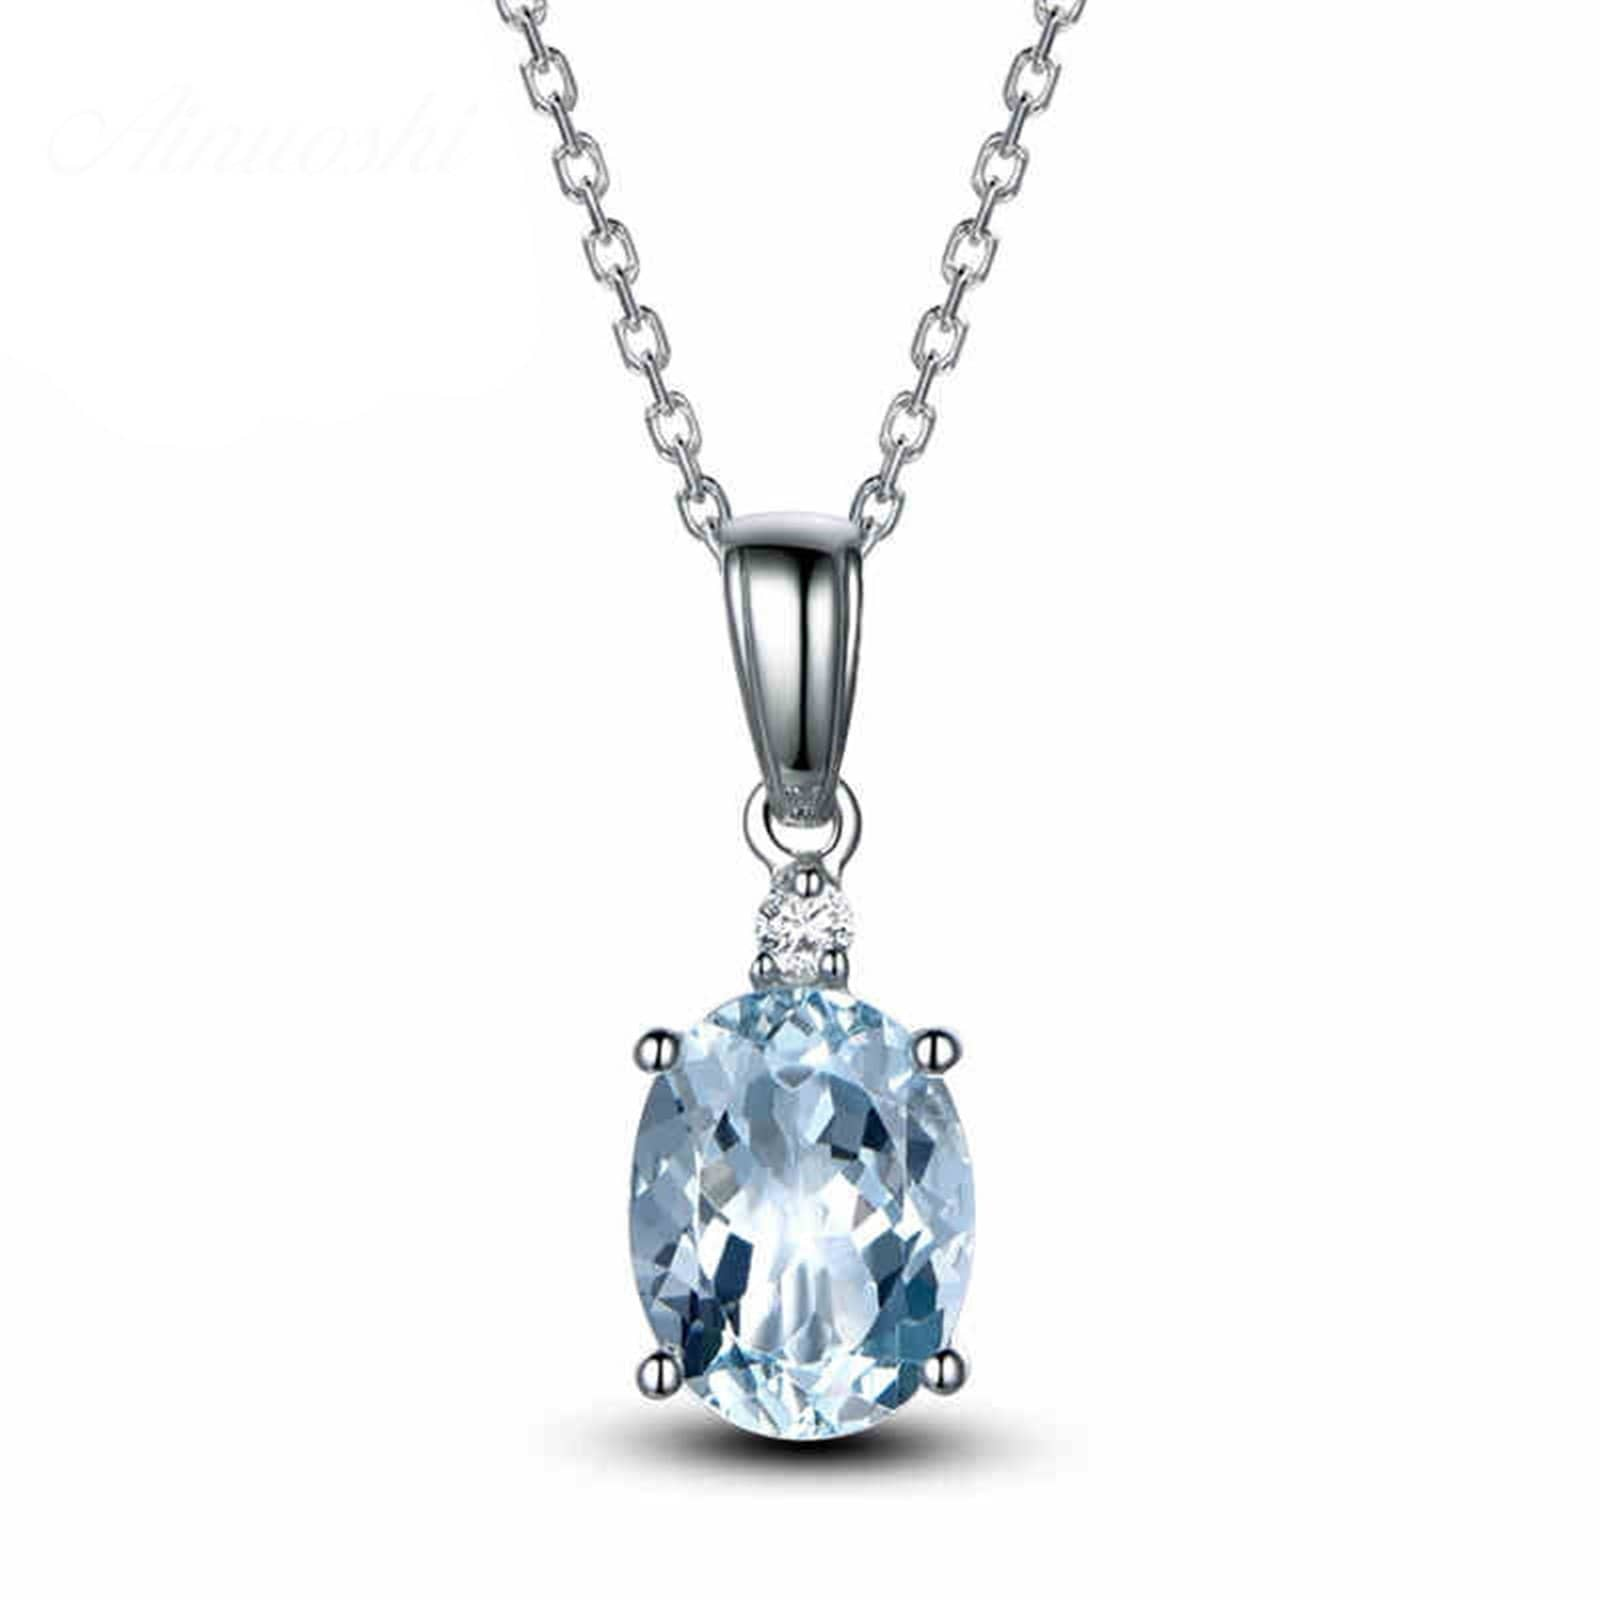 14K White Gold Natural Topaz Pendant Necklace for Women Lady Chain